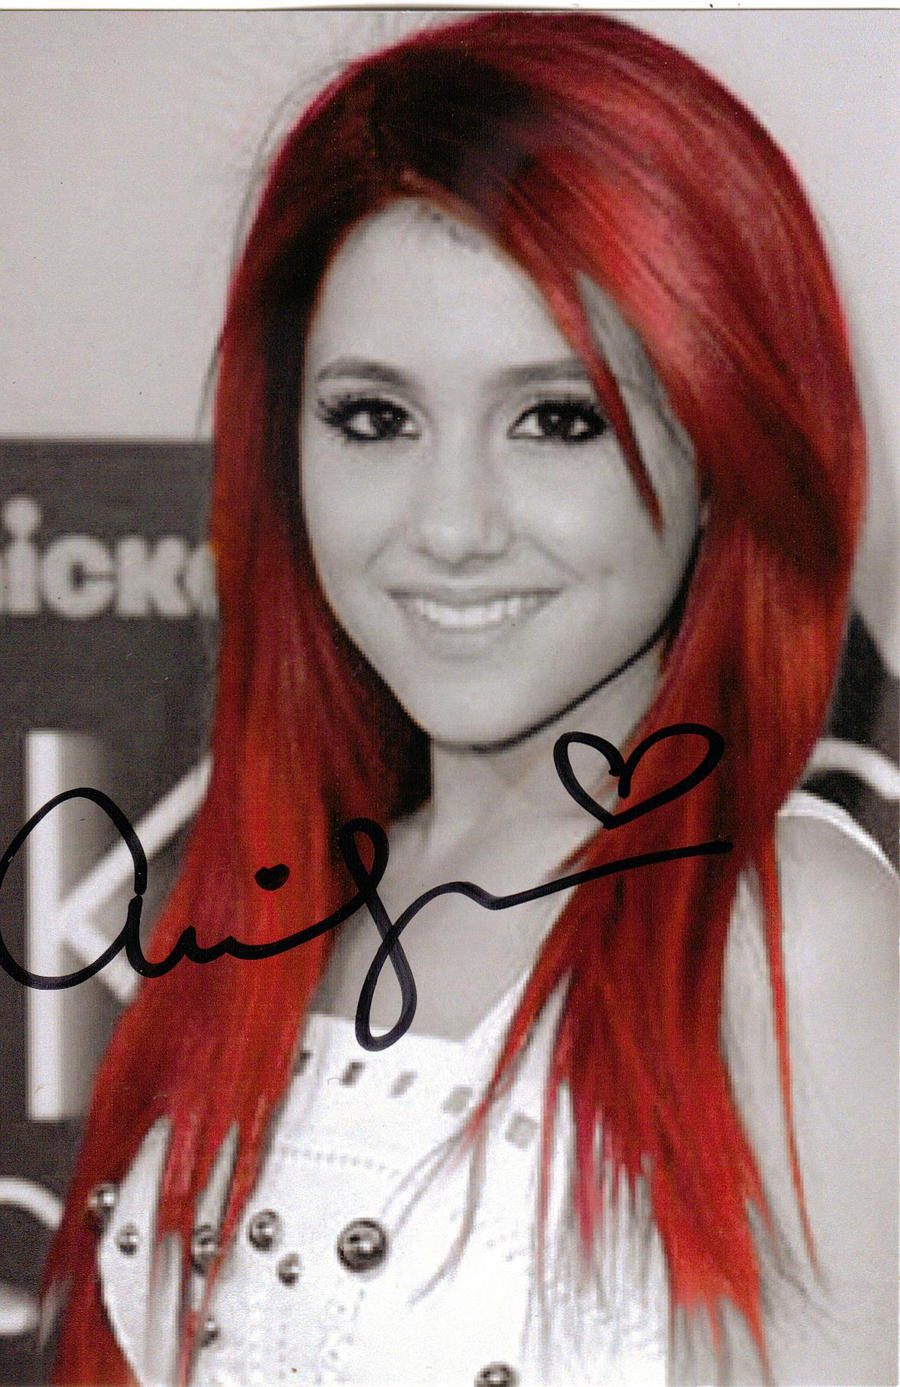 Ariana Grande's Autograph by FreakIveek on DeviantArt: freakiveek.deviantart.com/art/Ariana-Grande-s-Autograph-245883364